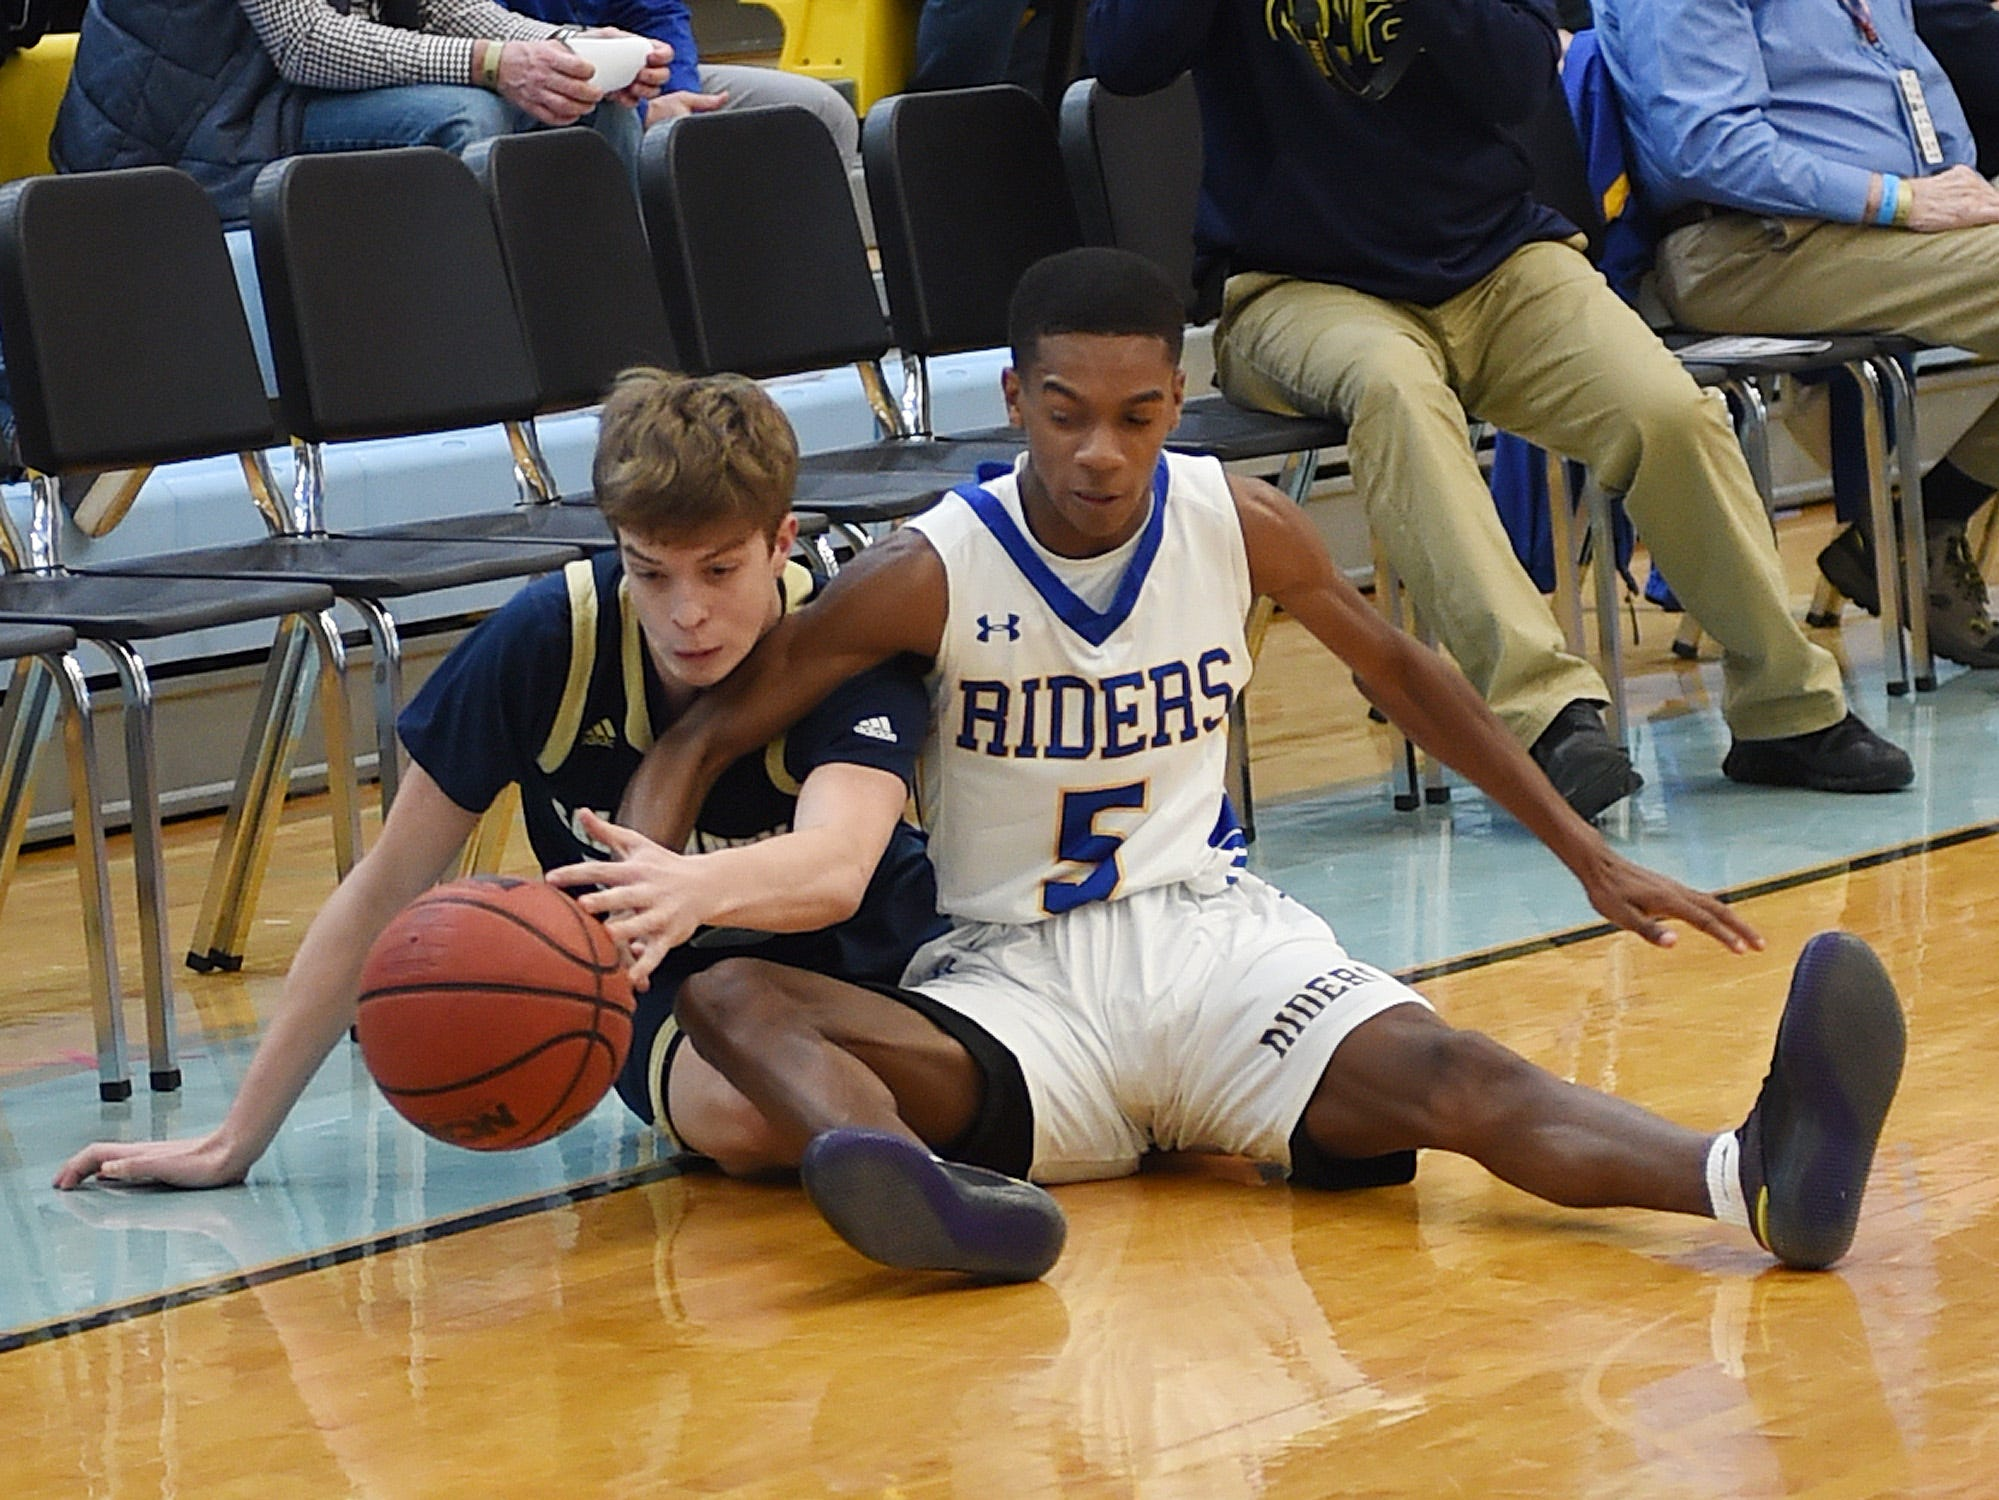 CR's #5 Jaden Corbett and Sallie's #32 Thomas Montooth fight for the ball as Slam Dunk to the Beach kicked off on Thursday December 27th with the opening game of Caesar Rodney playing Salesianum at the tournament held at Cape Henlopen High School.